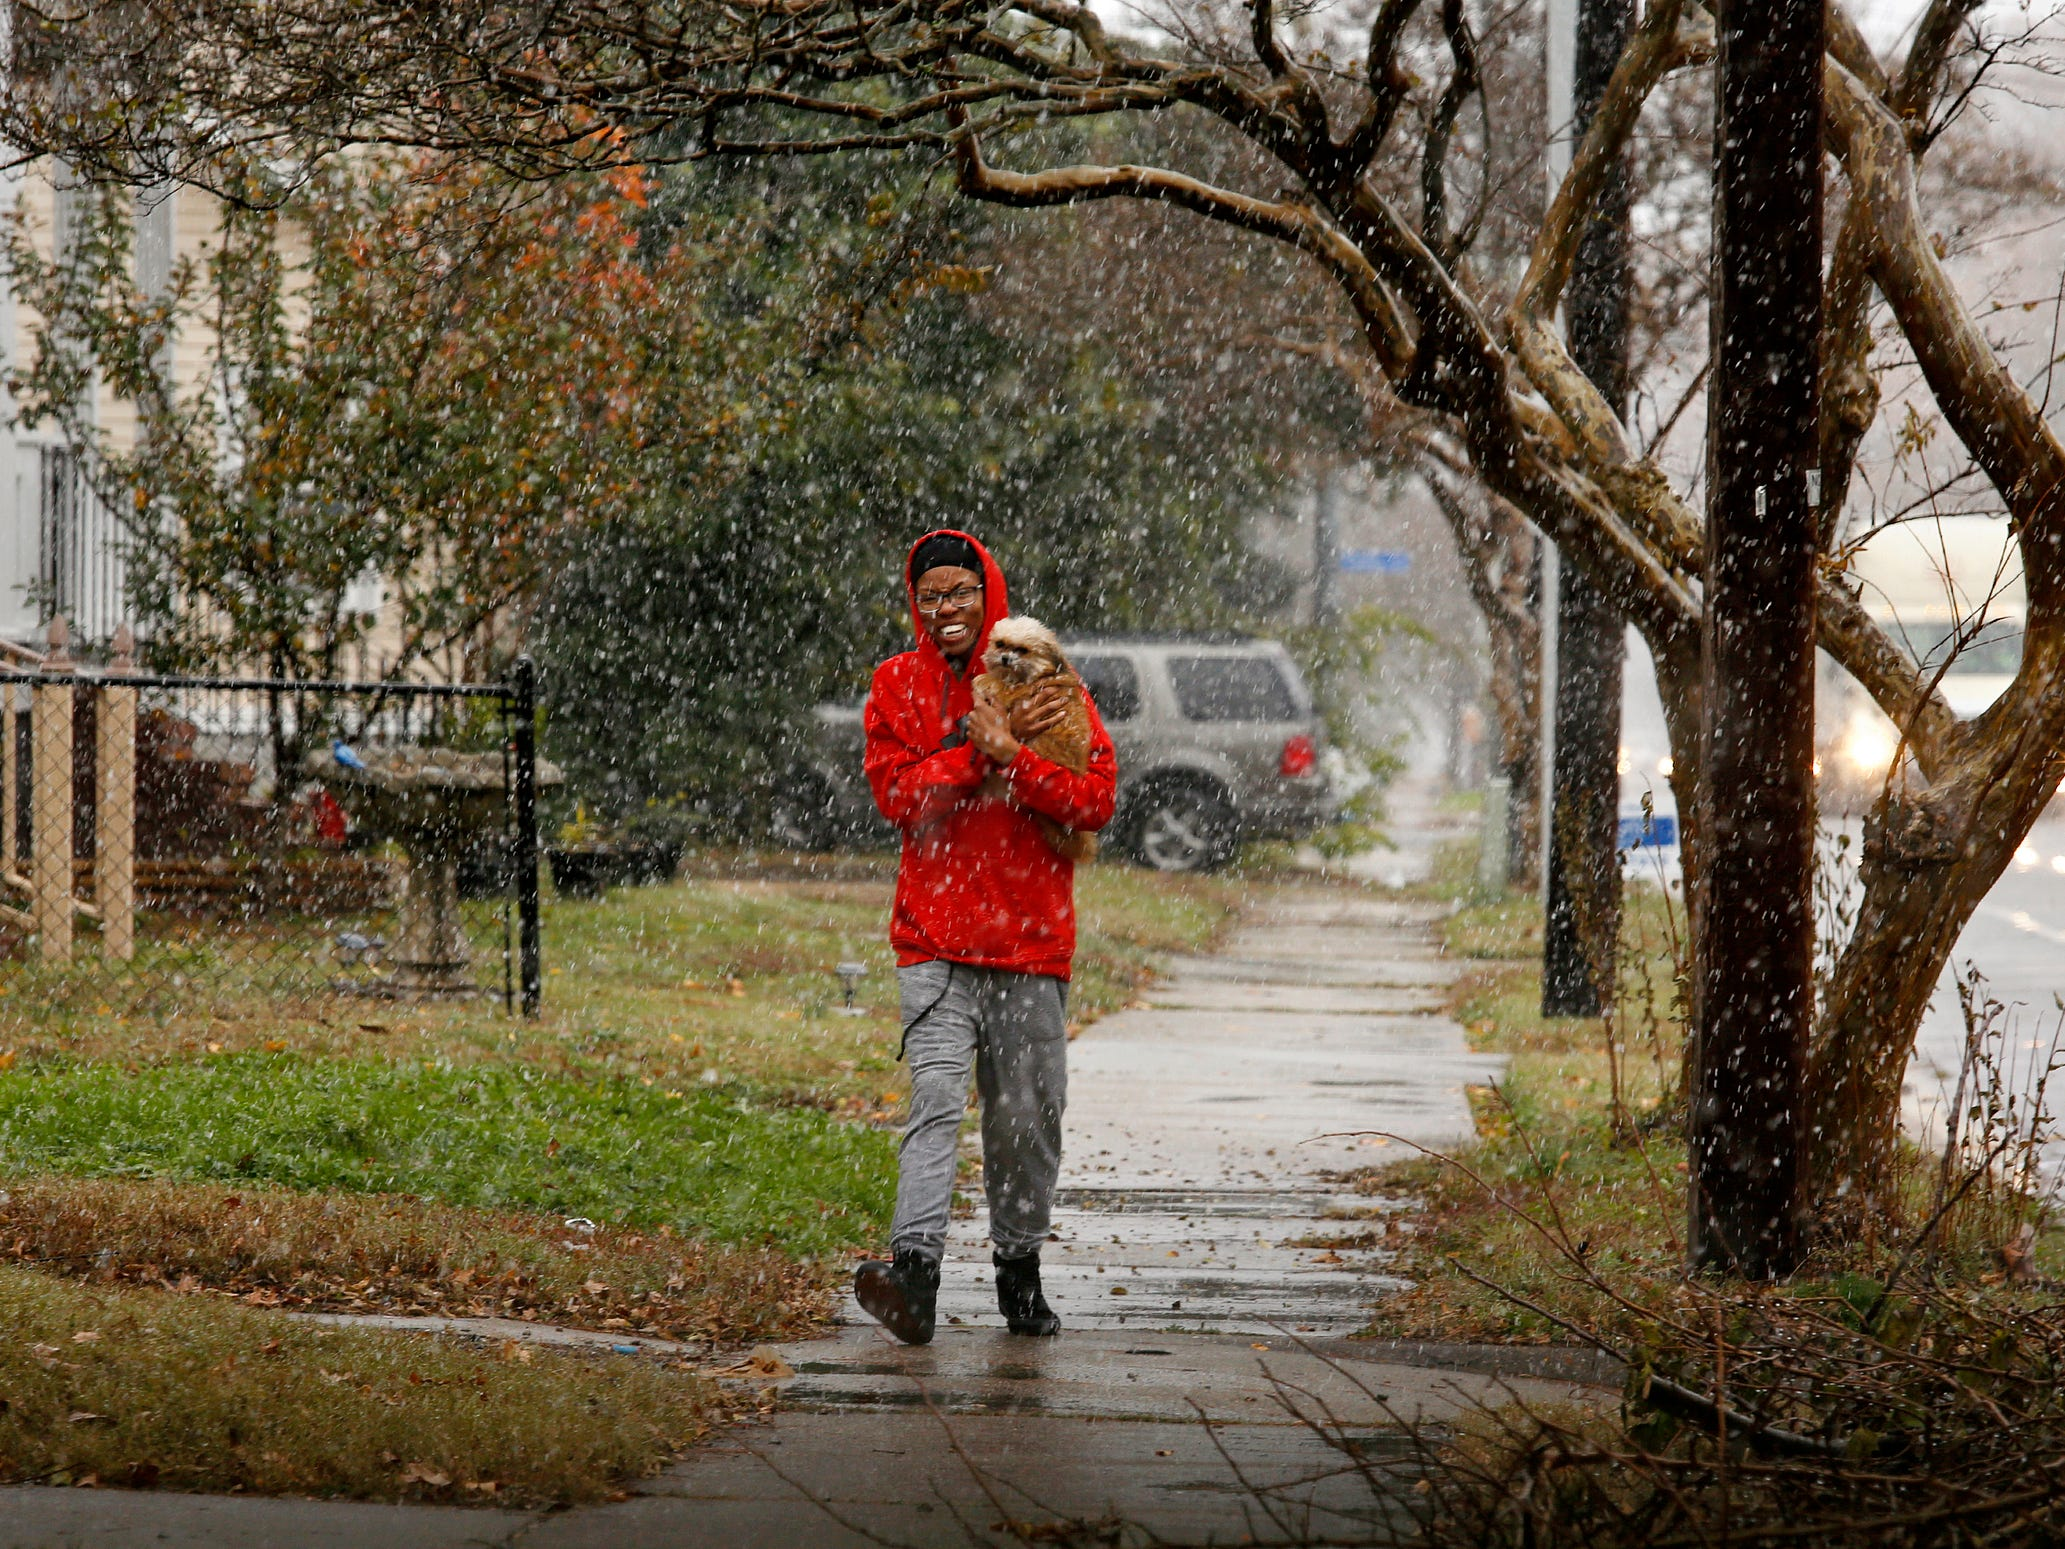 Josef Dowling, sheltering Dallas from the snow, walks in Norfolk, Va., on Dec. 5, 2018.